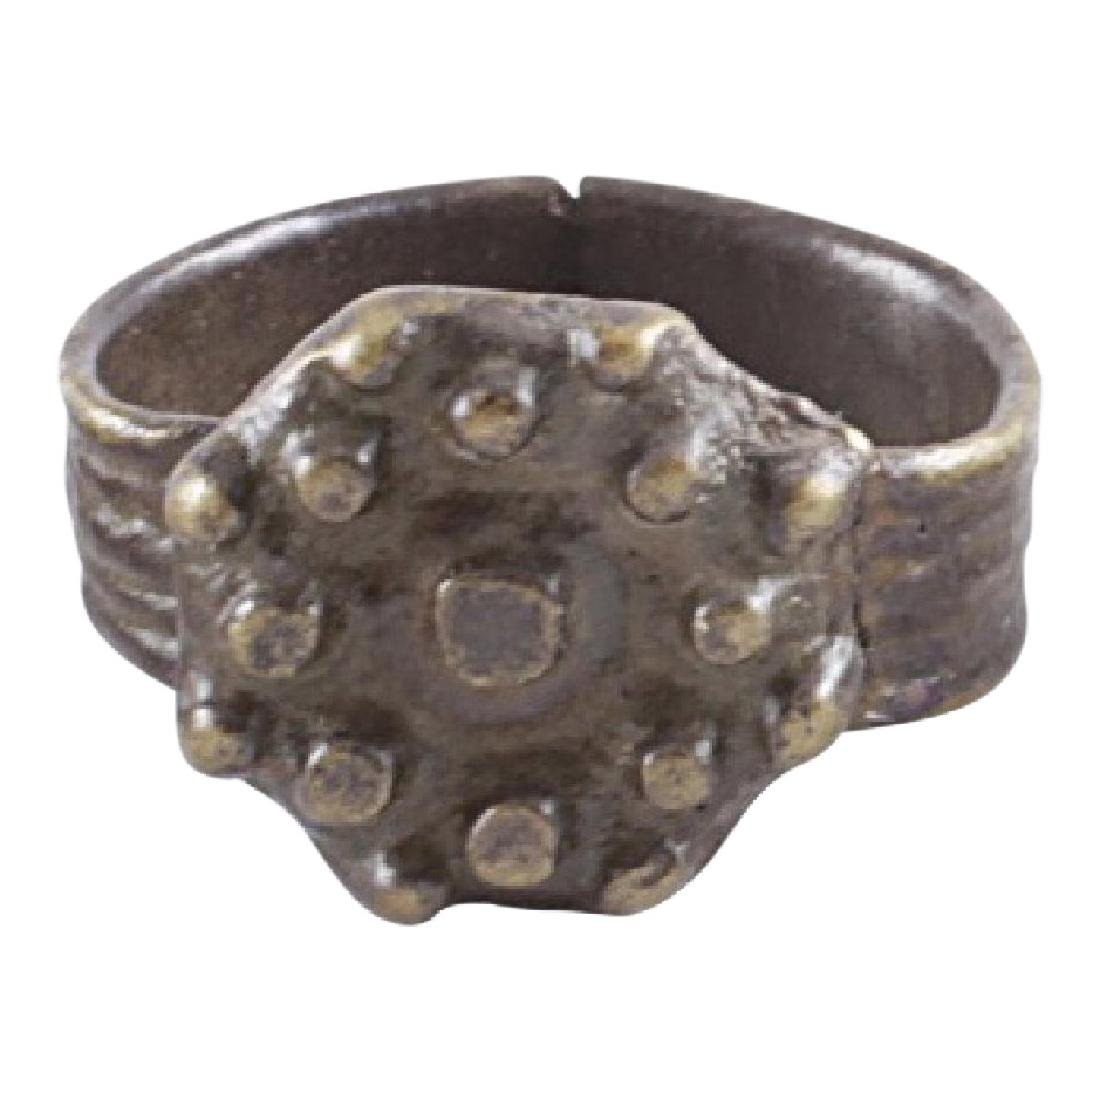 Great Plague of London Ring 15th-17th Century